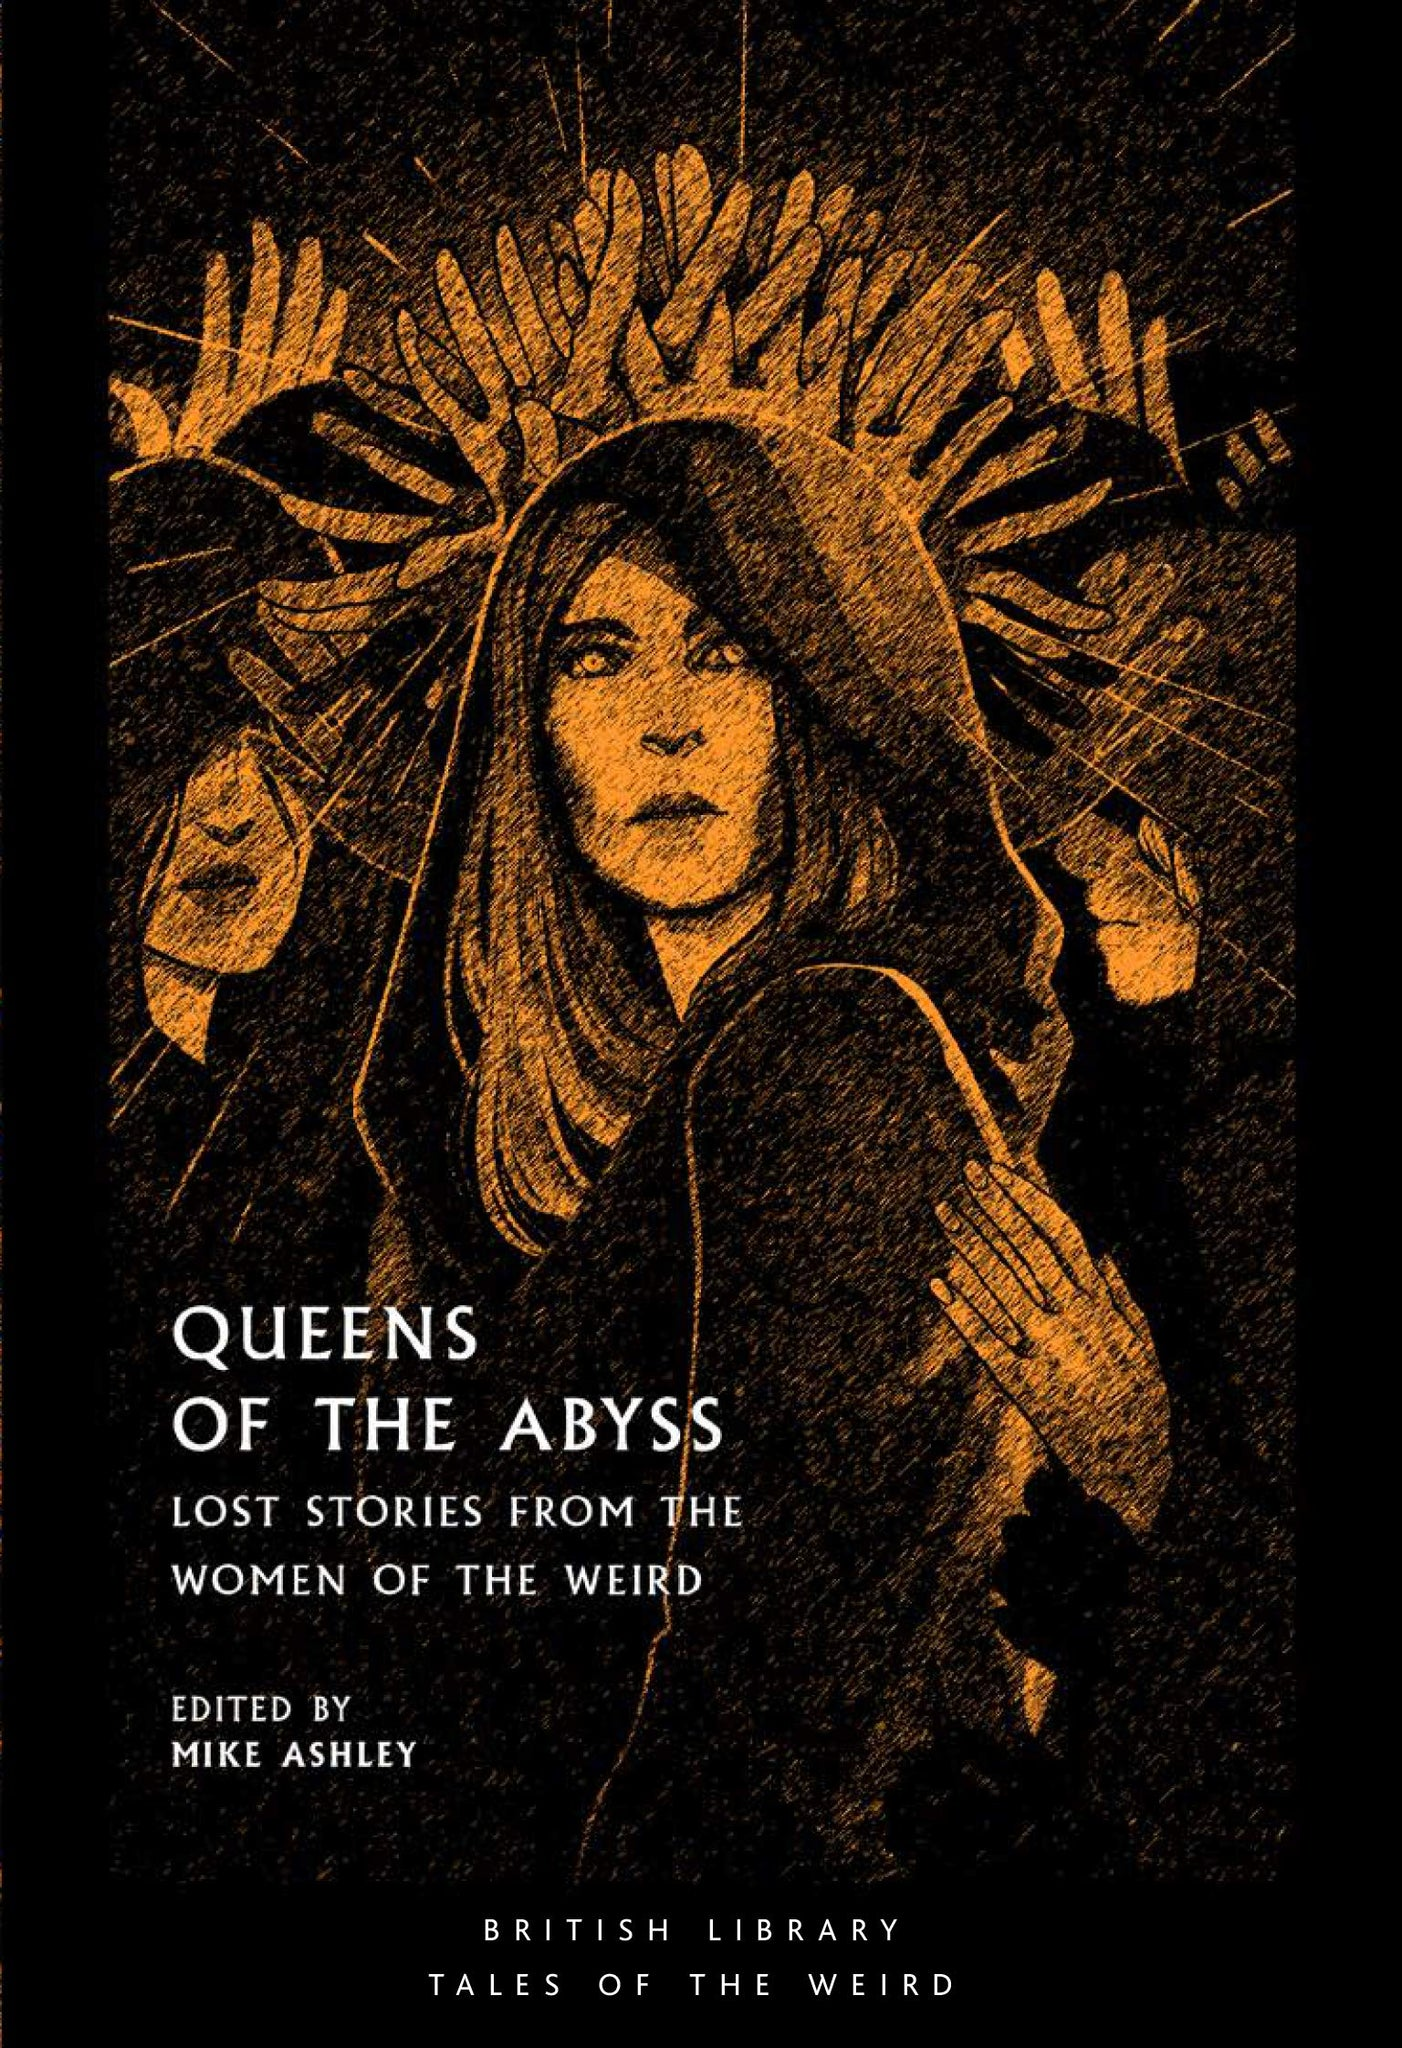 Queens of the Abyss: Lost Stories from the Women of the Weird ed by Mike Ashley